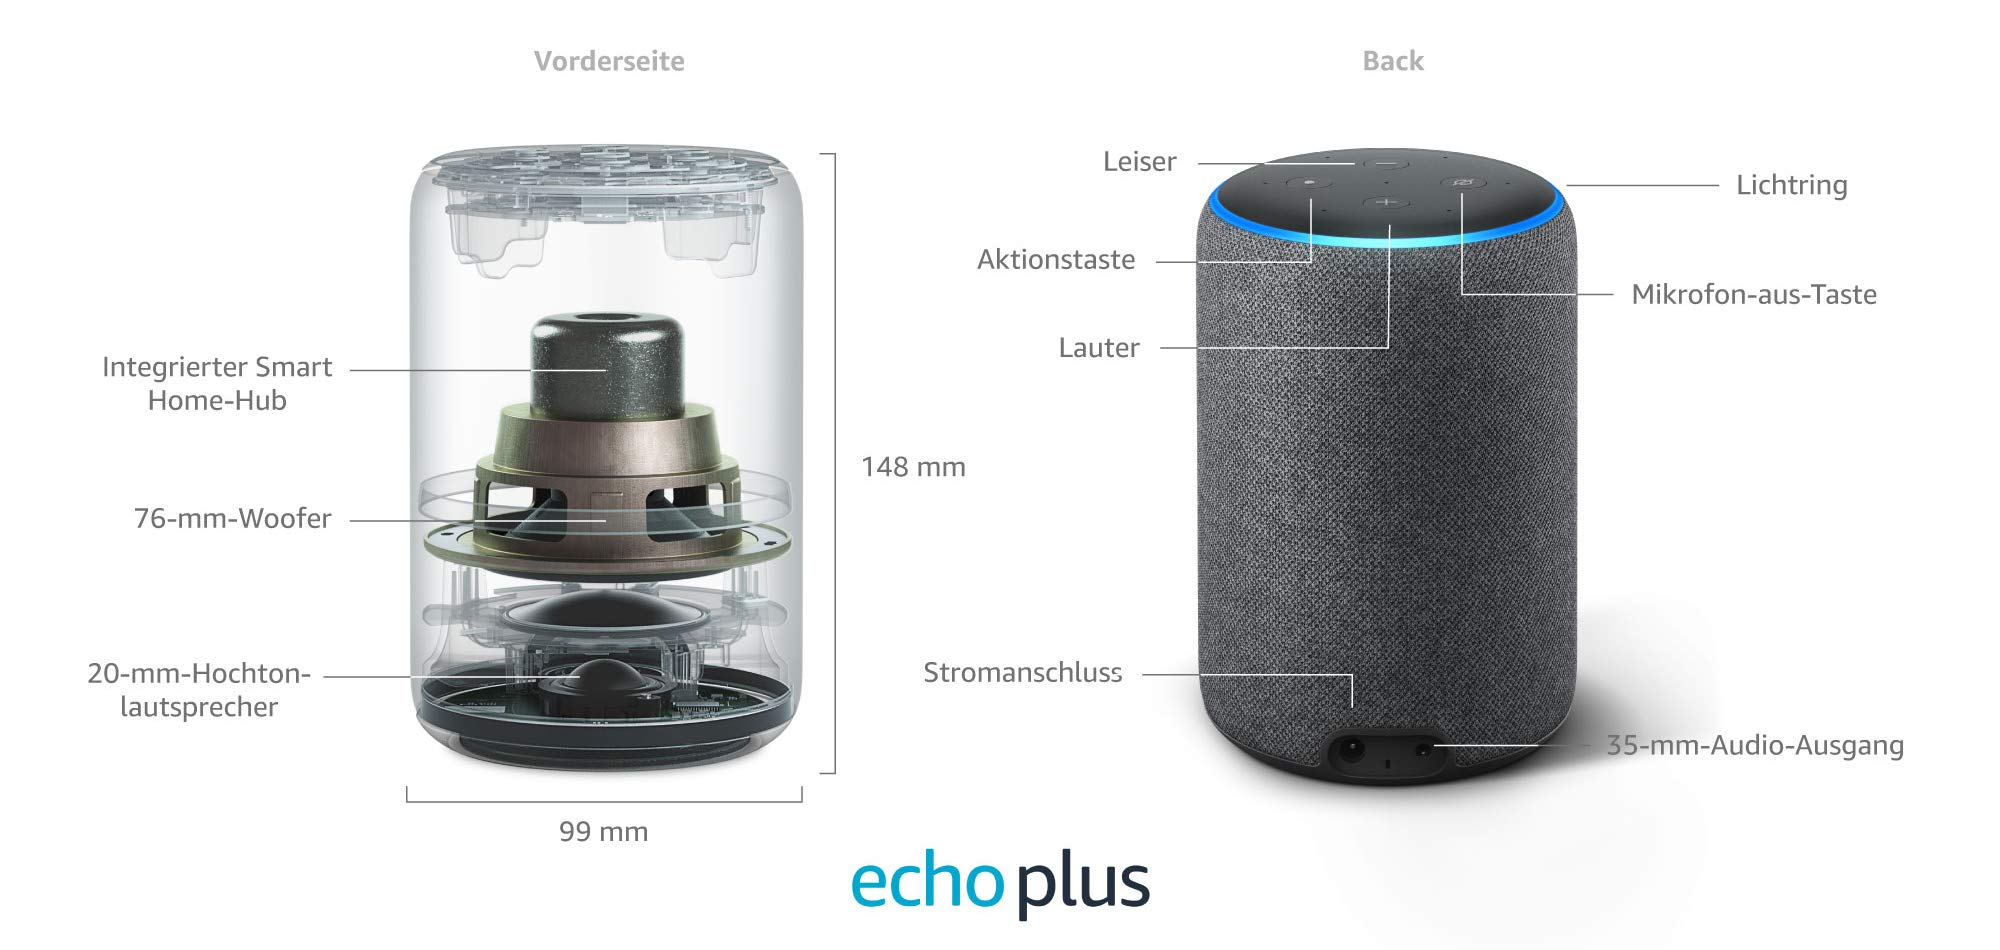 amazon-echo-plus-2gen Amazon bringt neue Echo-Familie & WLAN-Steckdose auf den Markt Audio Entertainment Hardware Multi-Room Smart Home